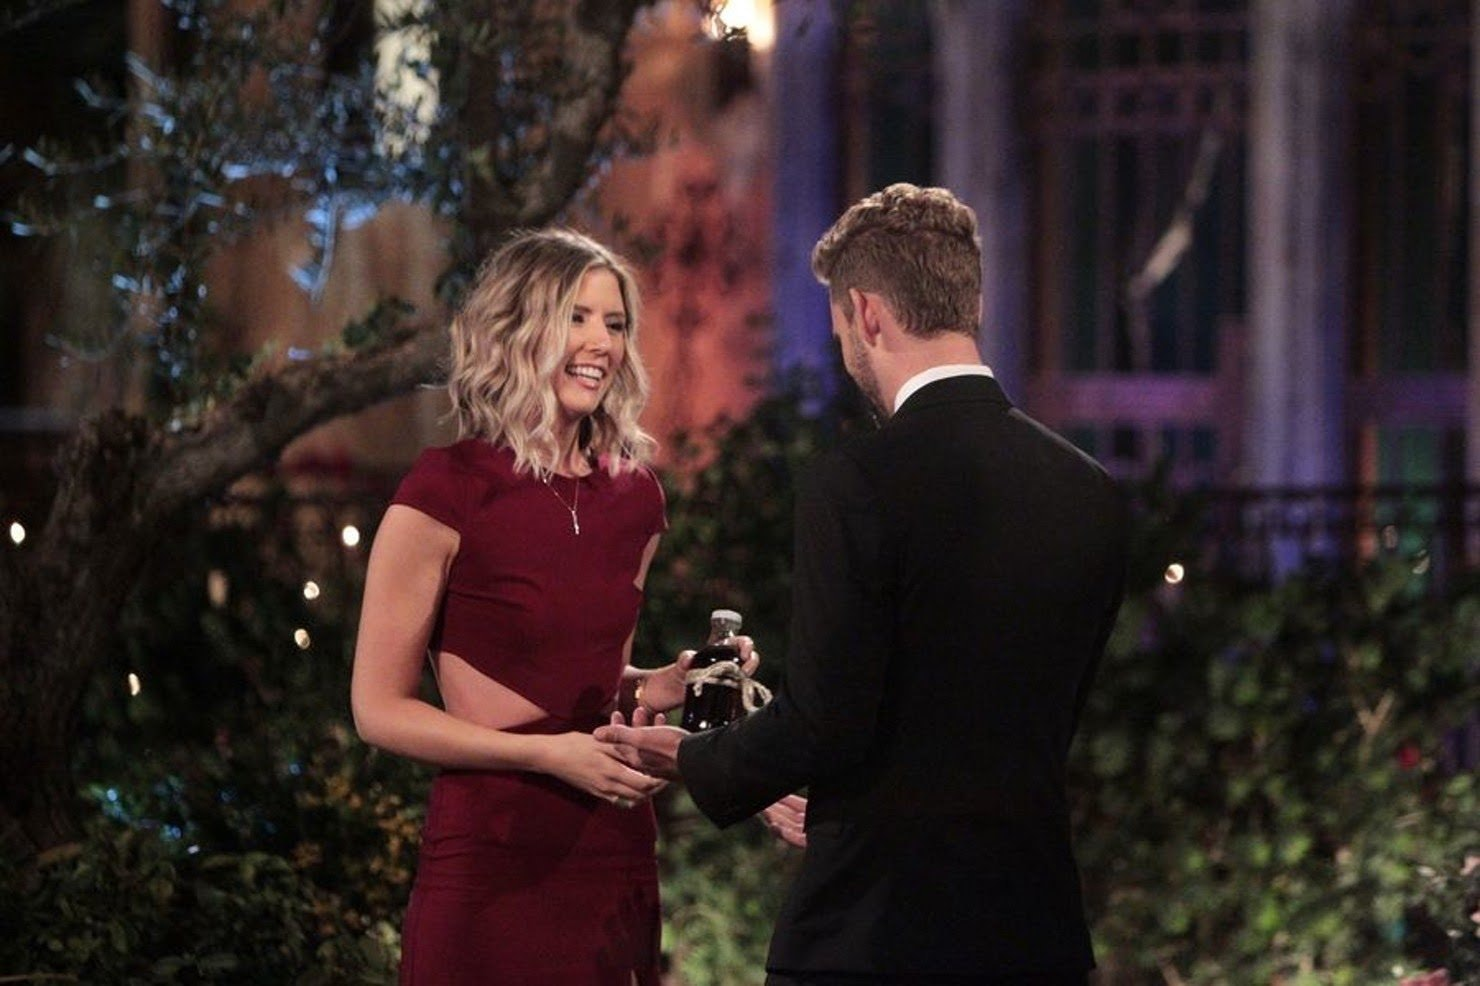 'The Bachelor' season 21 episode 5 spoilers: Corinne and Taylor go head-to-head